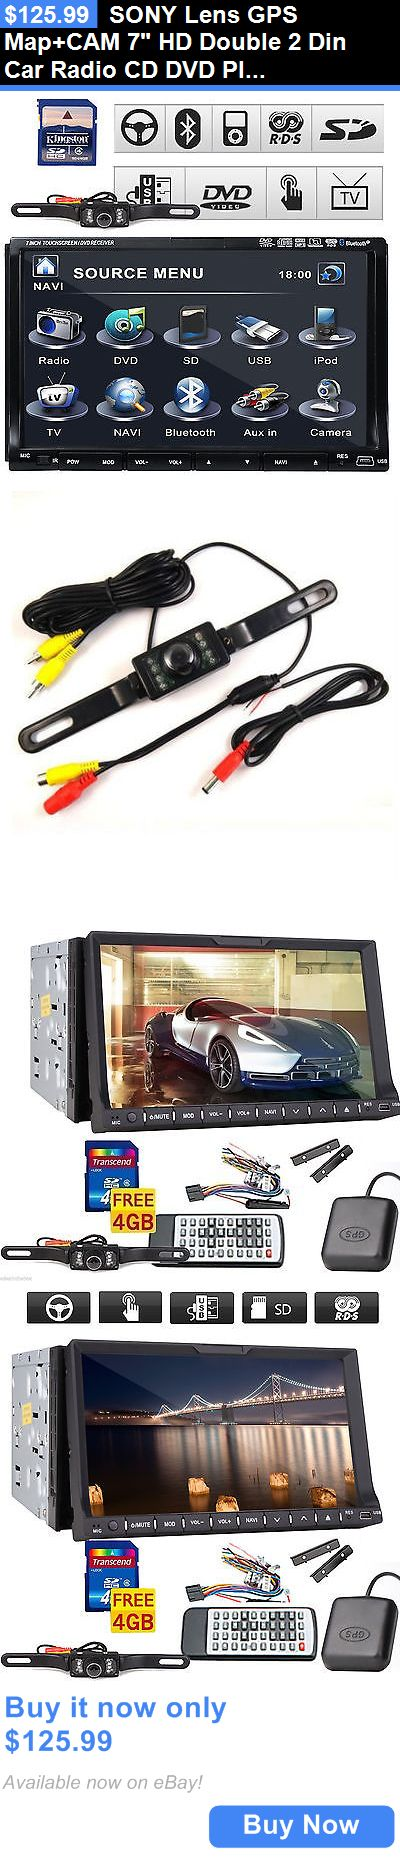 Vehicle Electronics And GPS: Sony Lens Gps Map+Cam 7 Hd Double 2 Din Car Radio Cd Dvd Player 3D Bluetooth Tv BUY IT NOW ONLY: $125.99